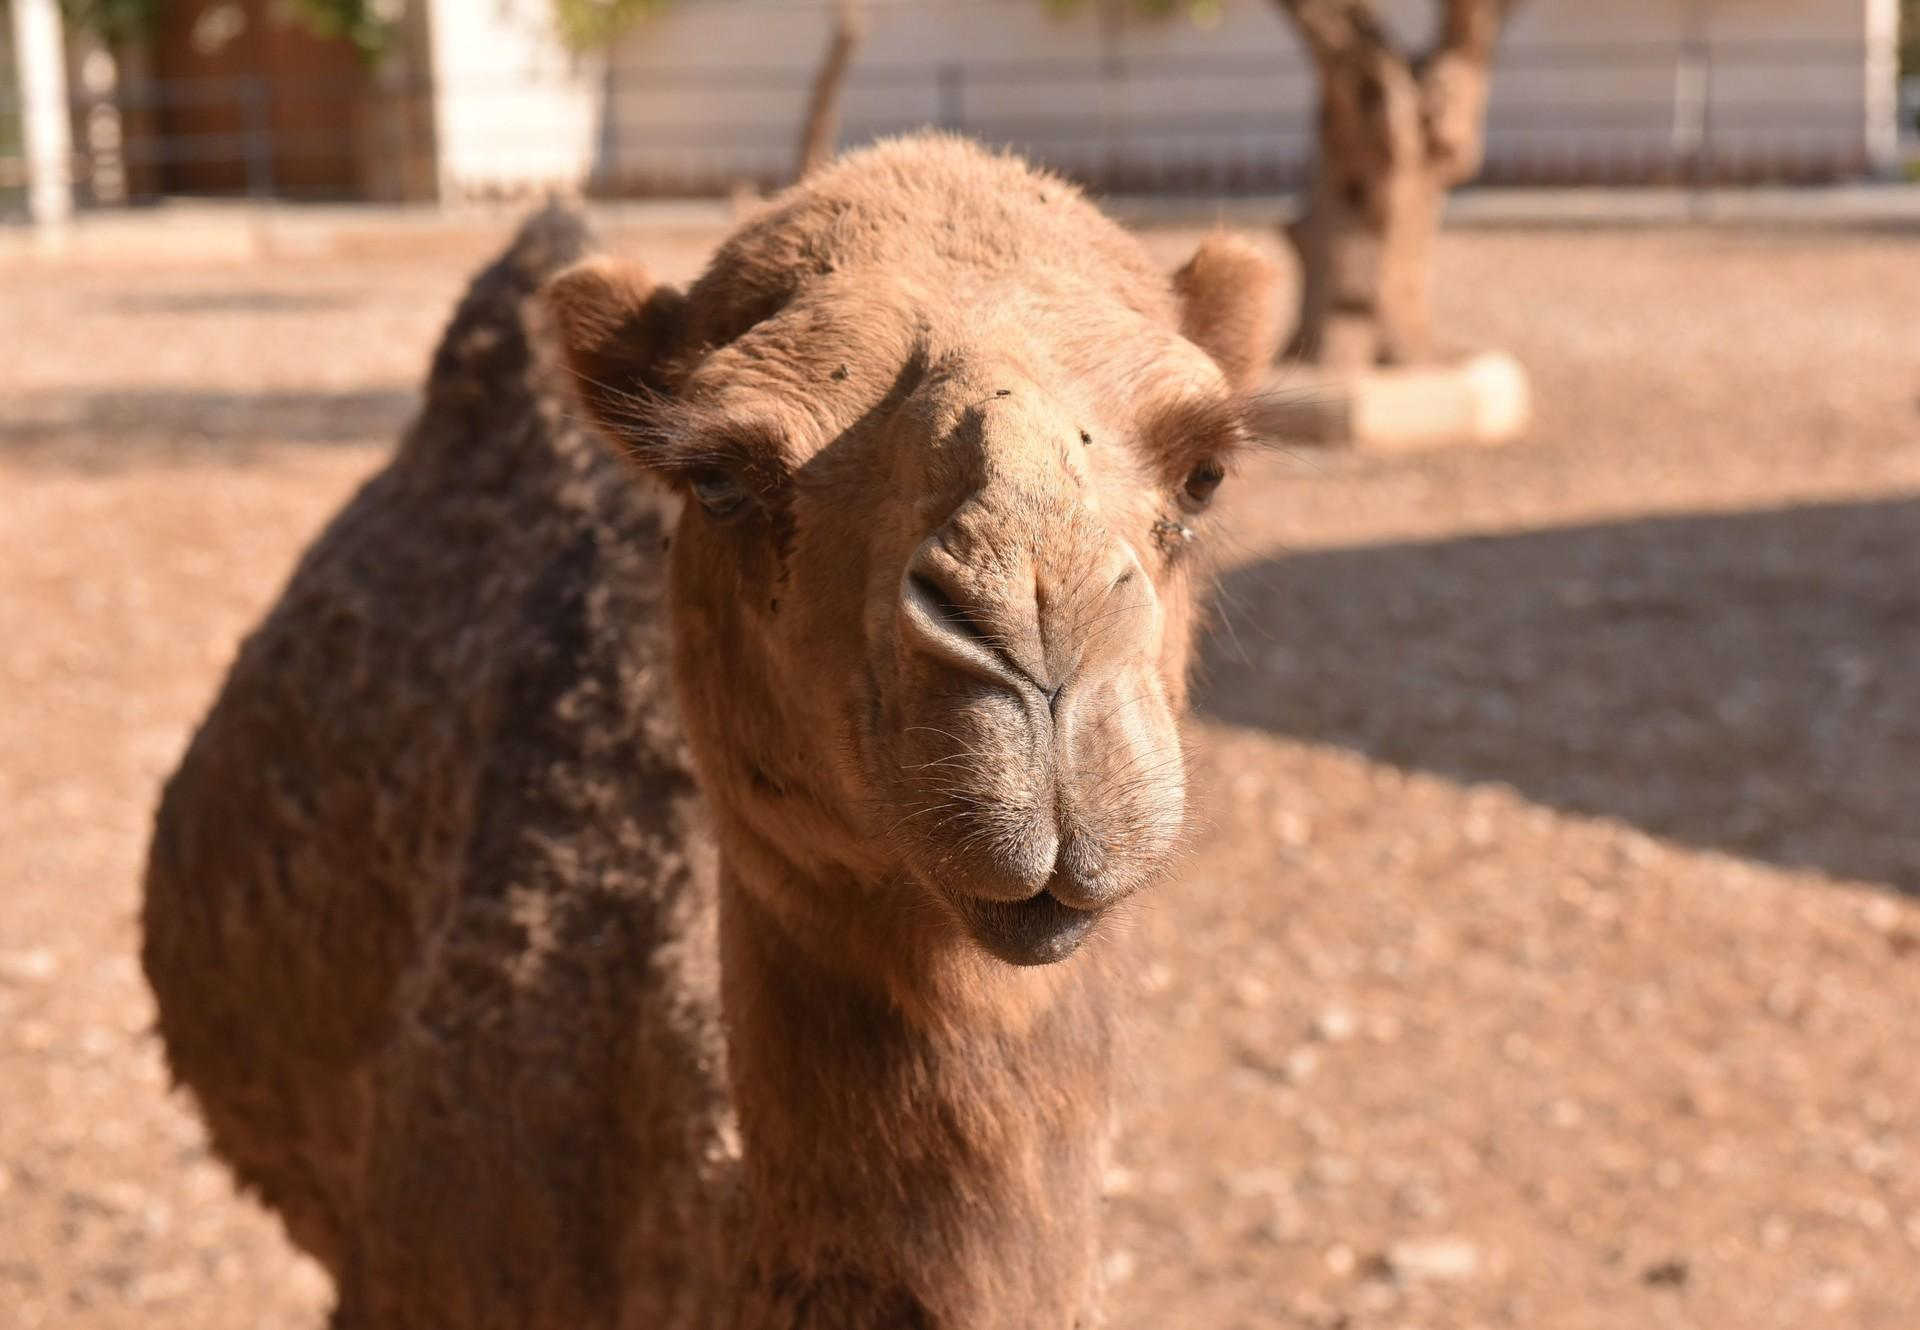 Four Paws Takes Care Of Neglected Zoo Animals In Lebanon Press Releases Our Stories Four Paws International